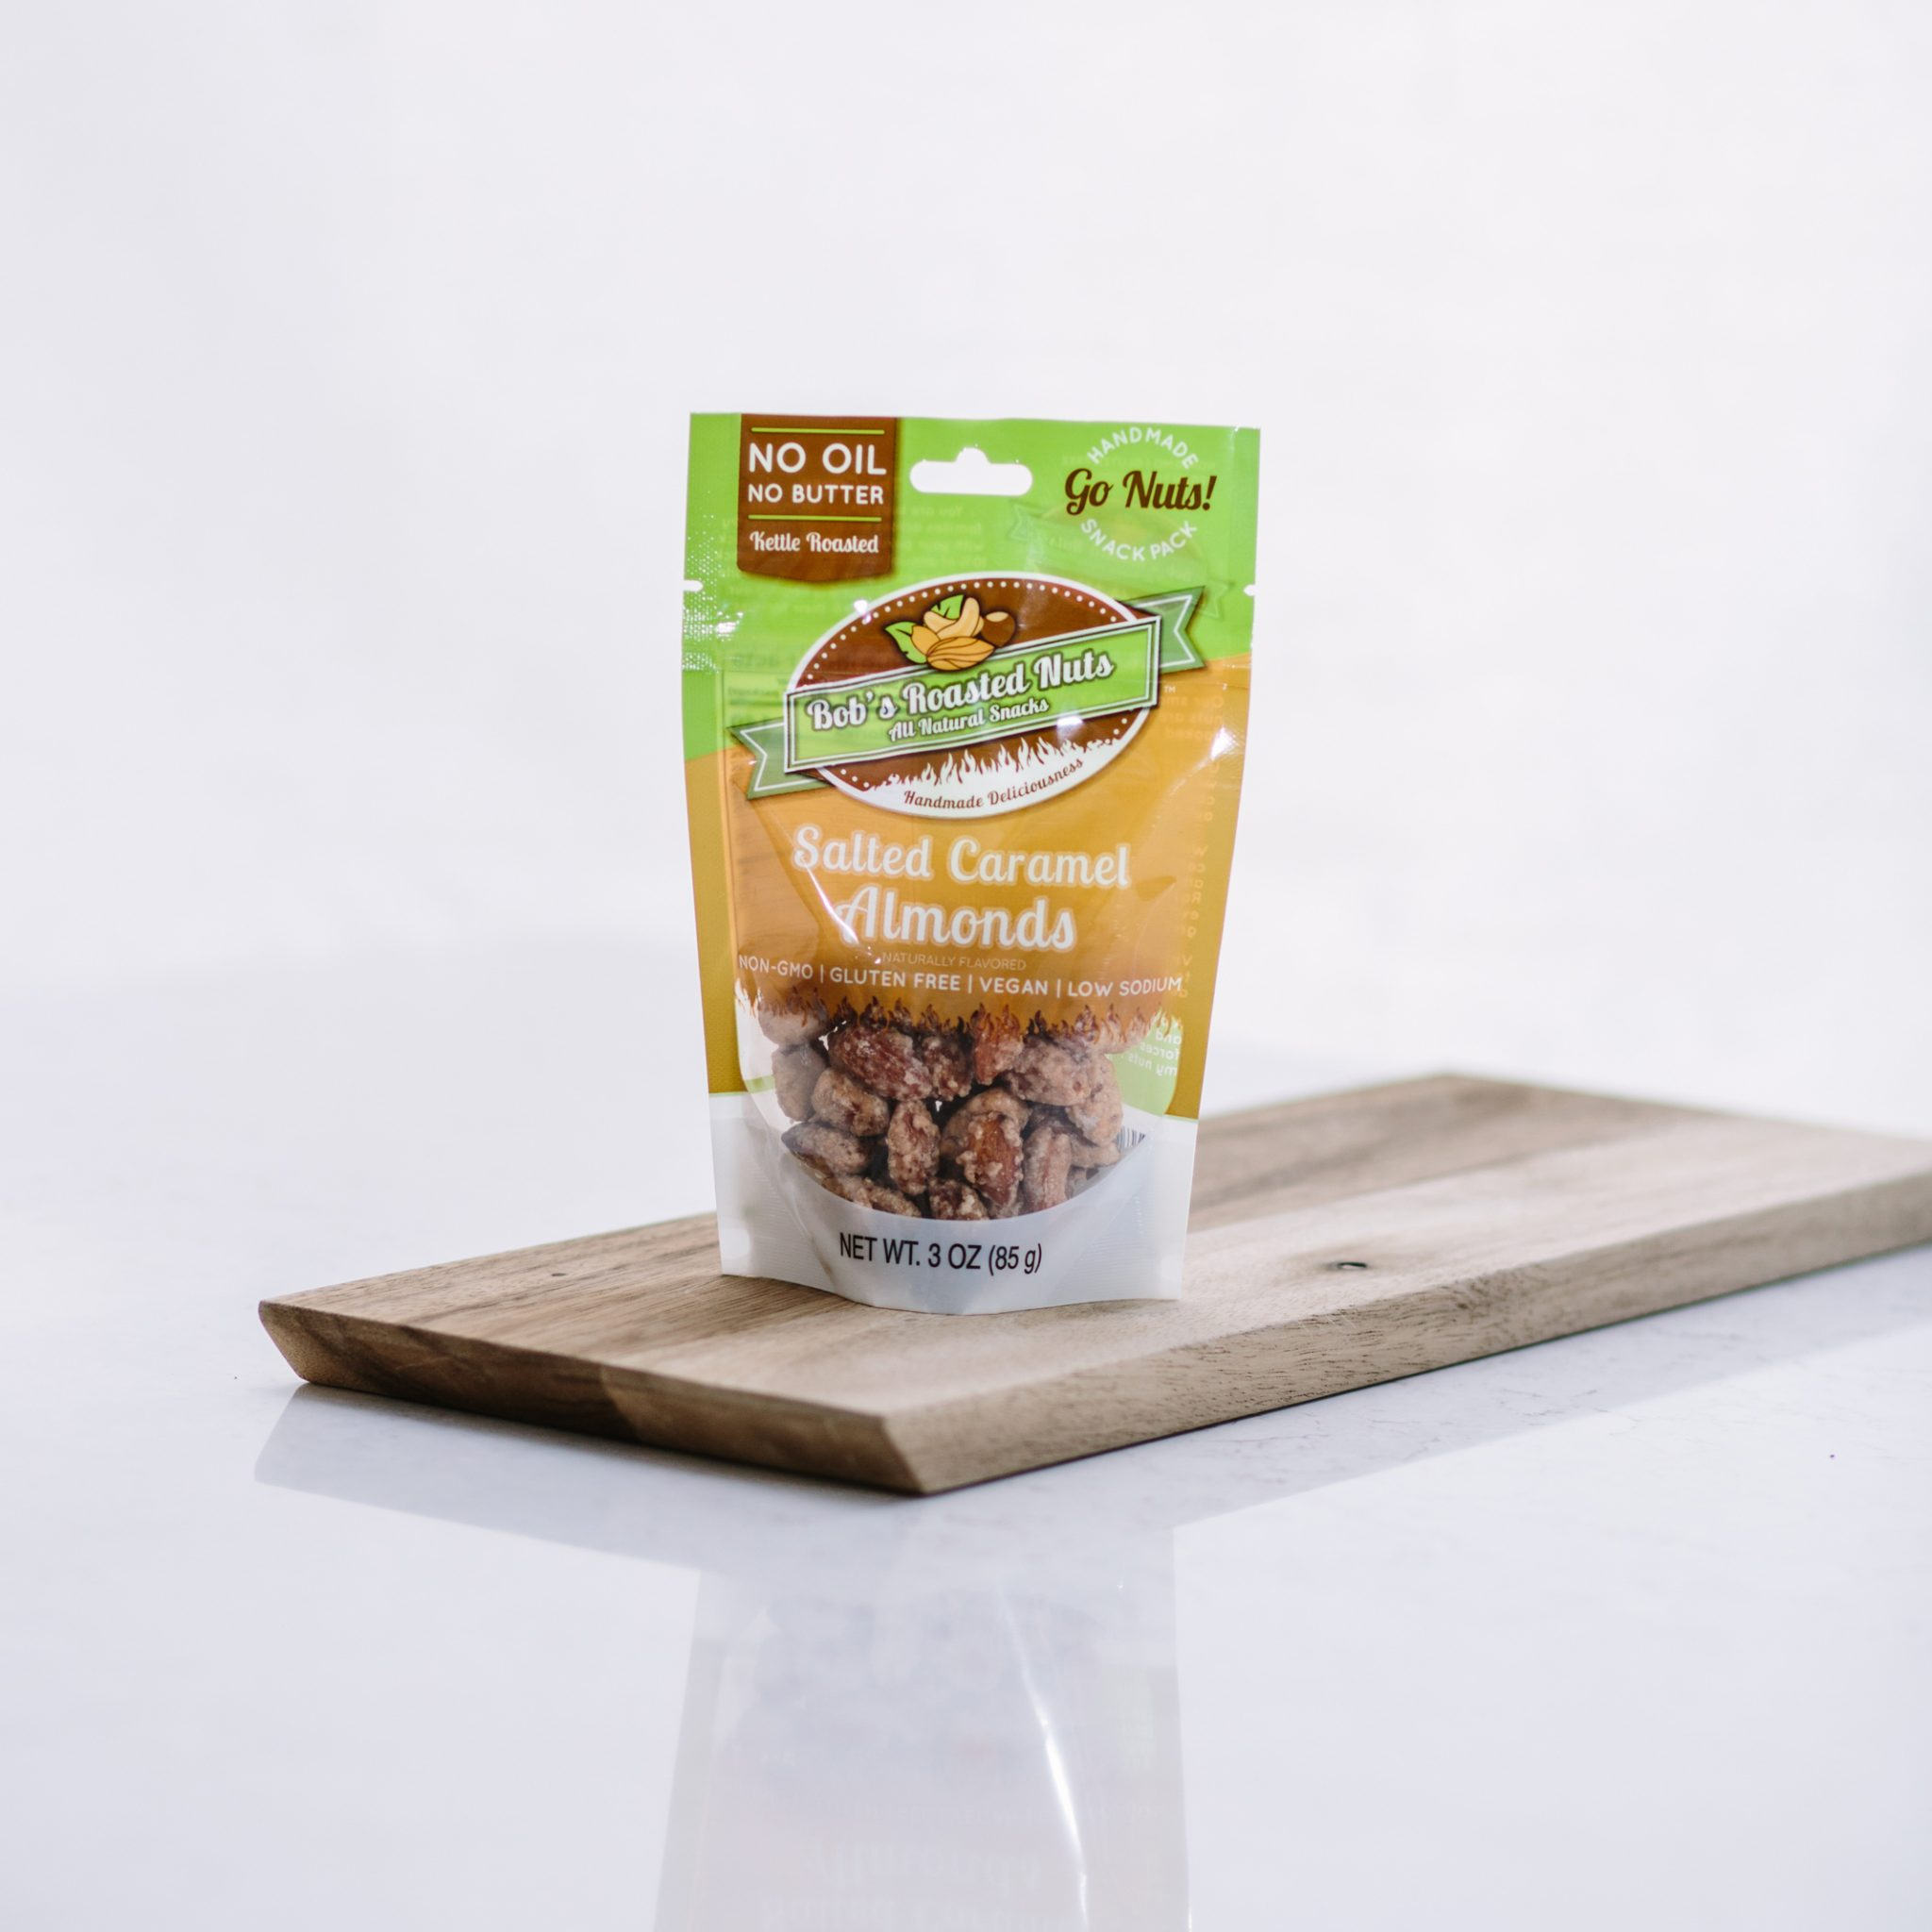 Salted Caramel Almond Snack Pack - Bob's Roasted Nuts